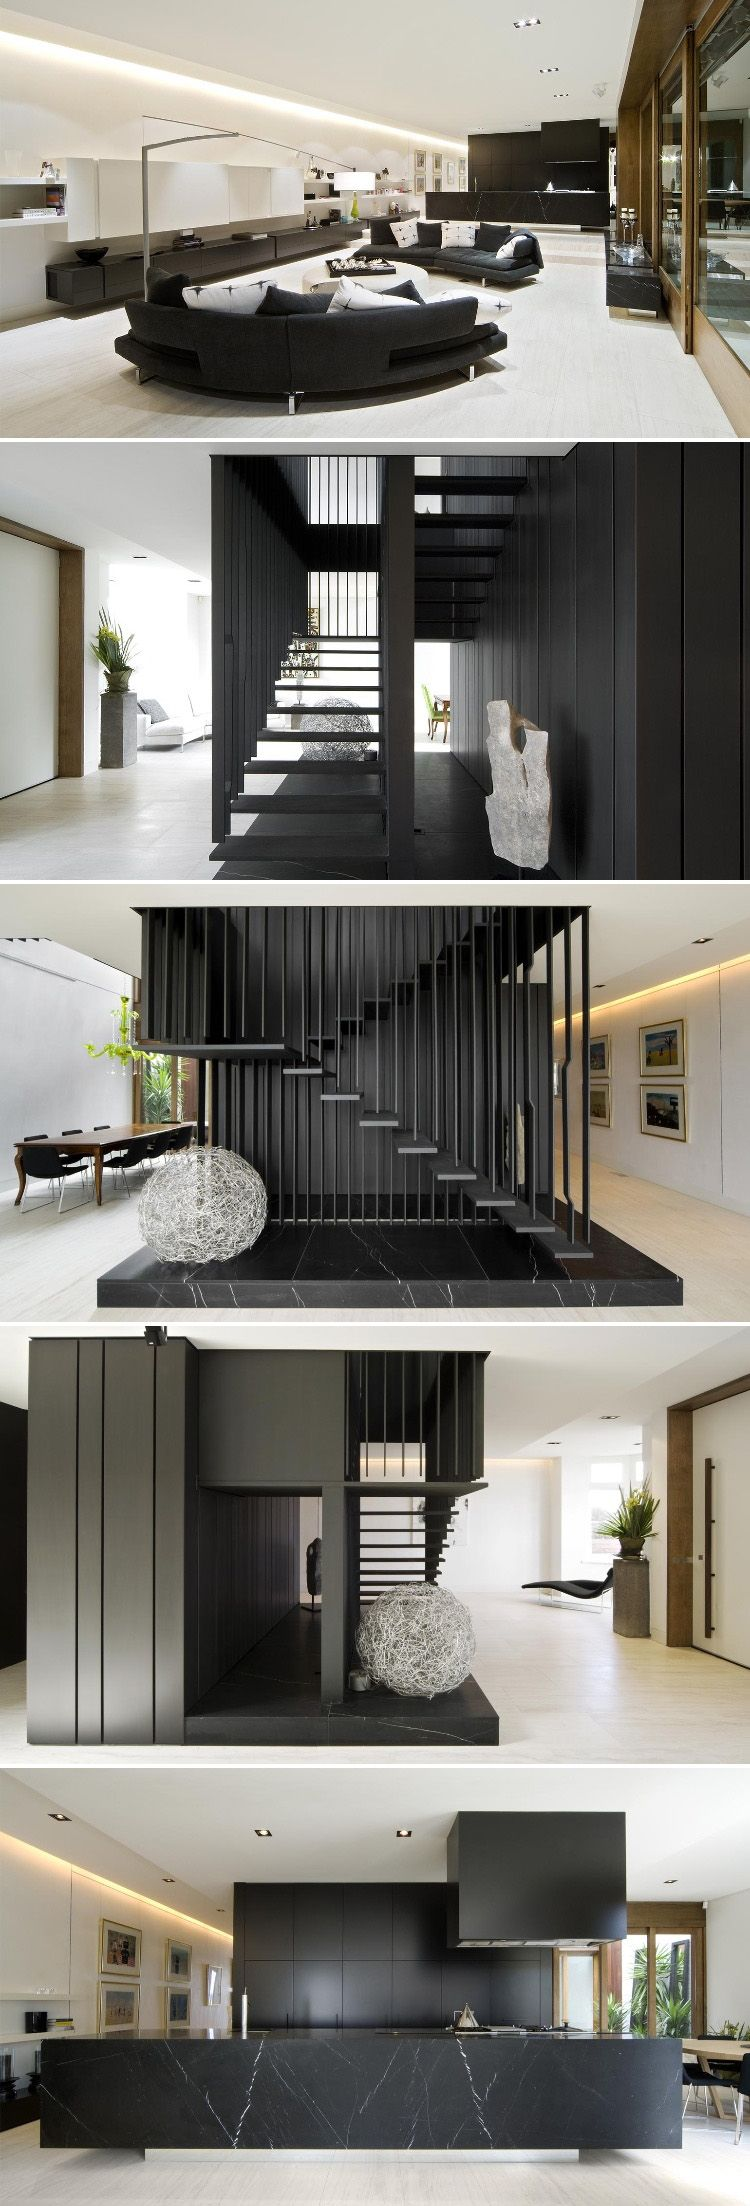 Middle park house 2 by chamberlain javens architects - How many interior designers in the us ...